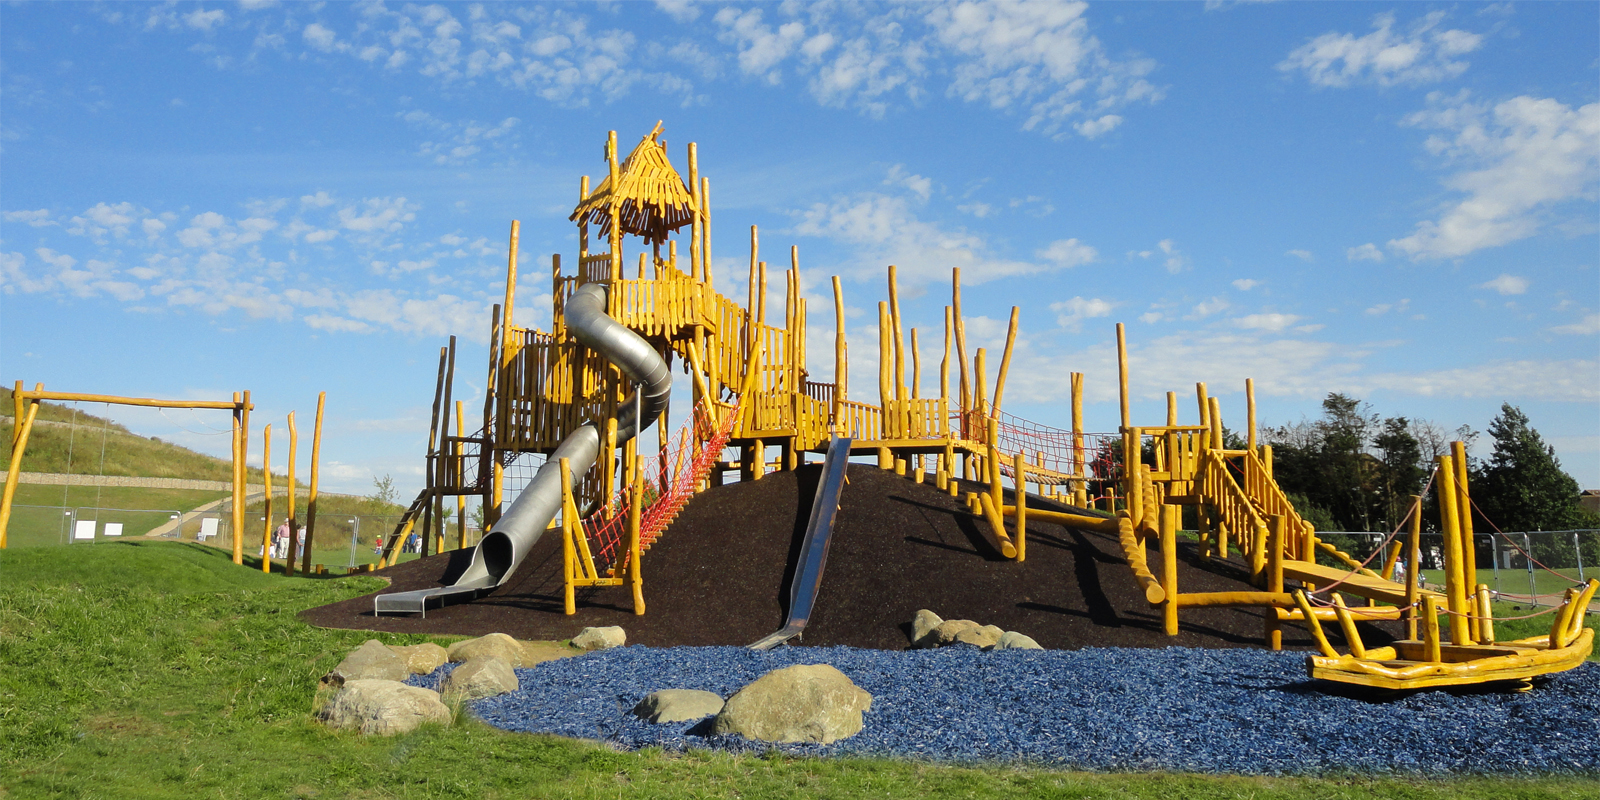 The Children S Playground Company Playground Equipment